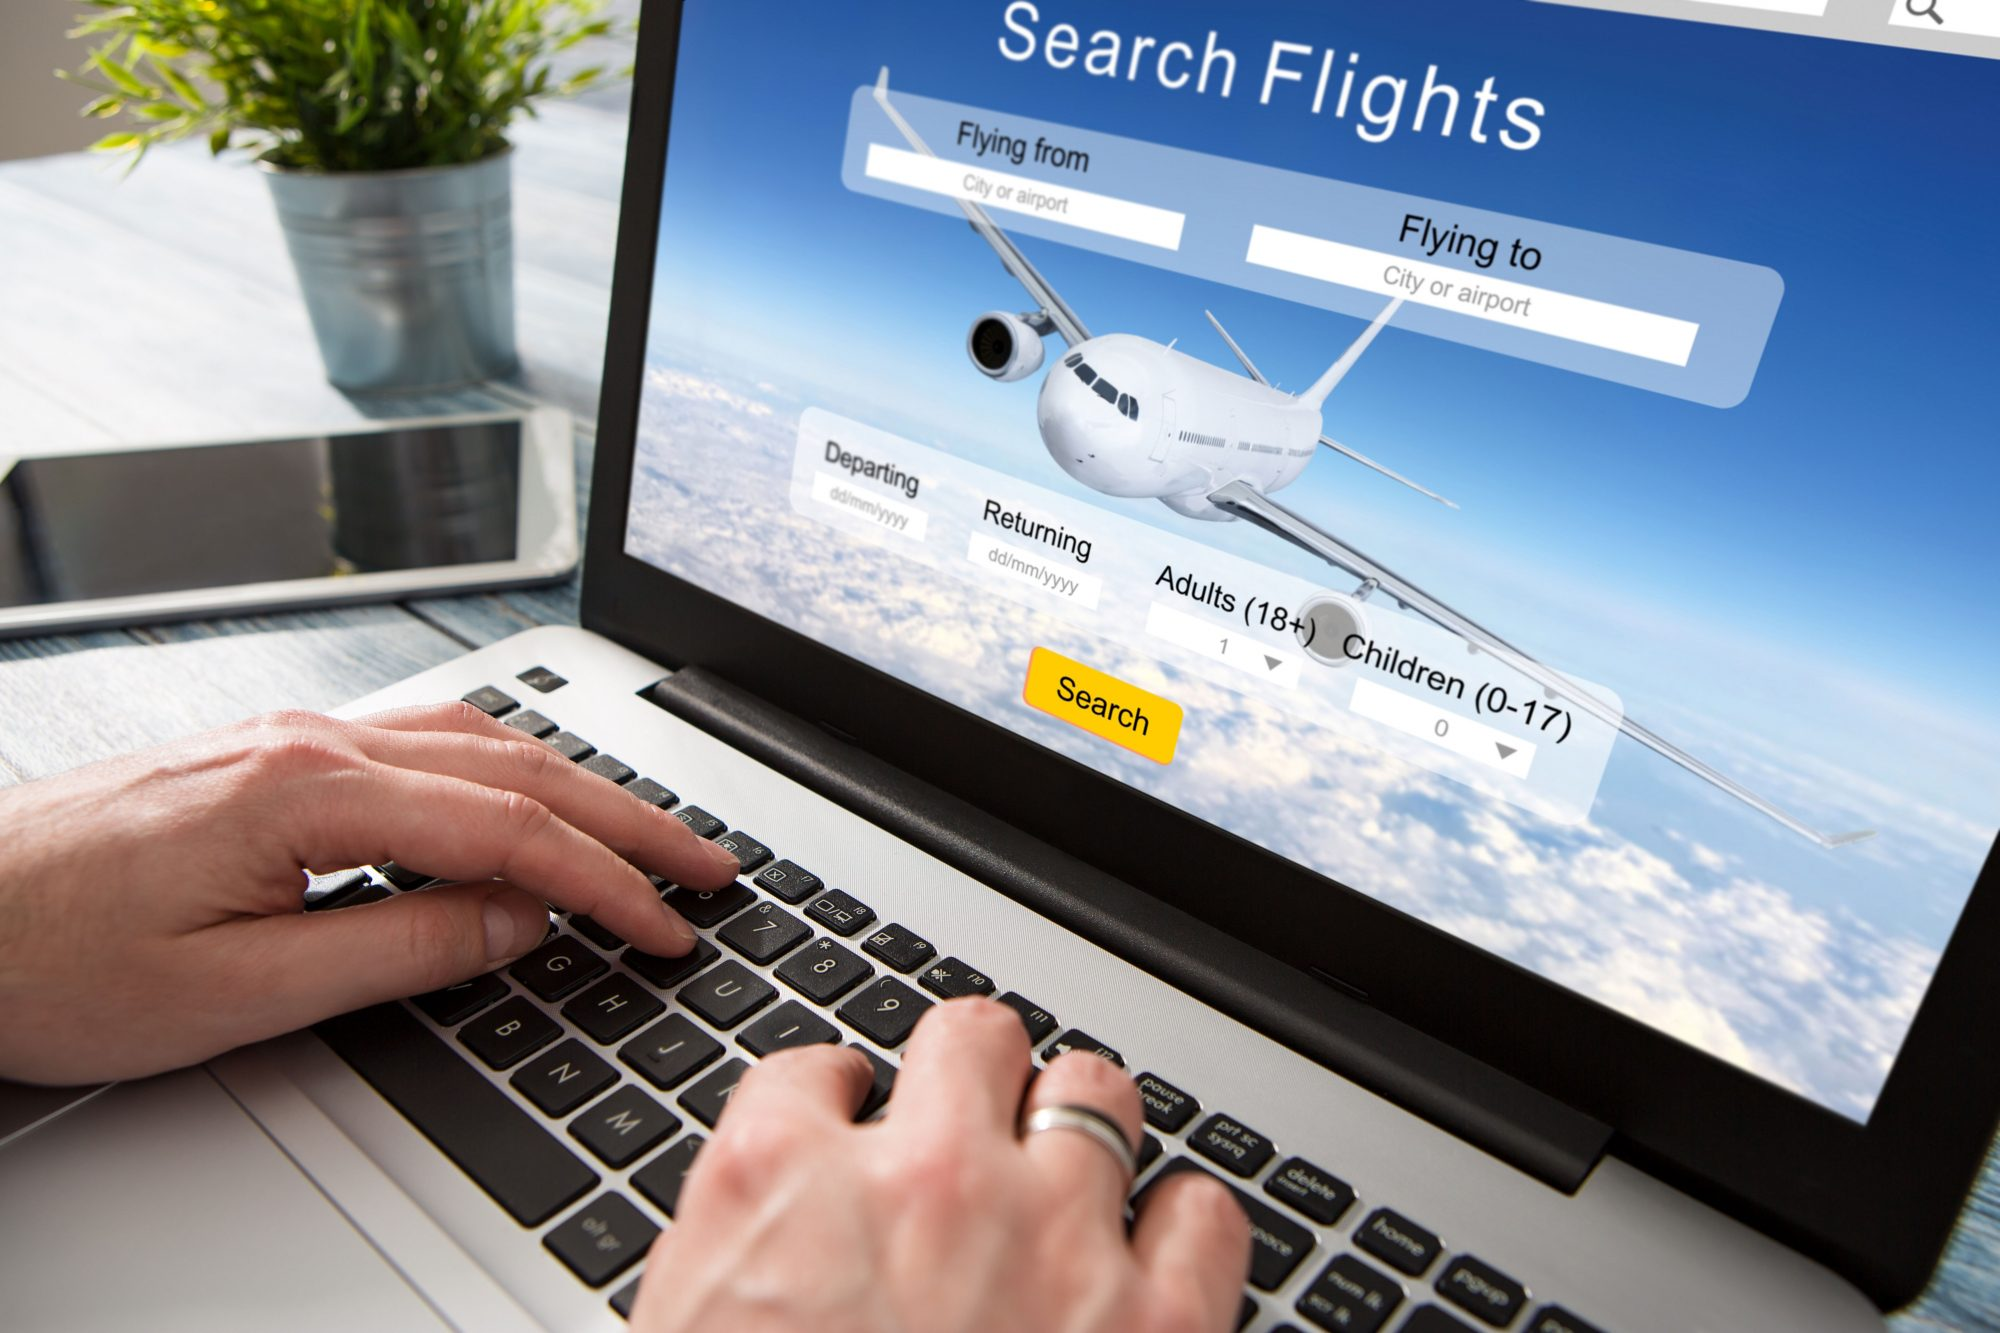 Here are 6 Easy Ways to Find the Cheapest Flights Using Google